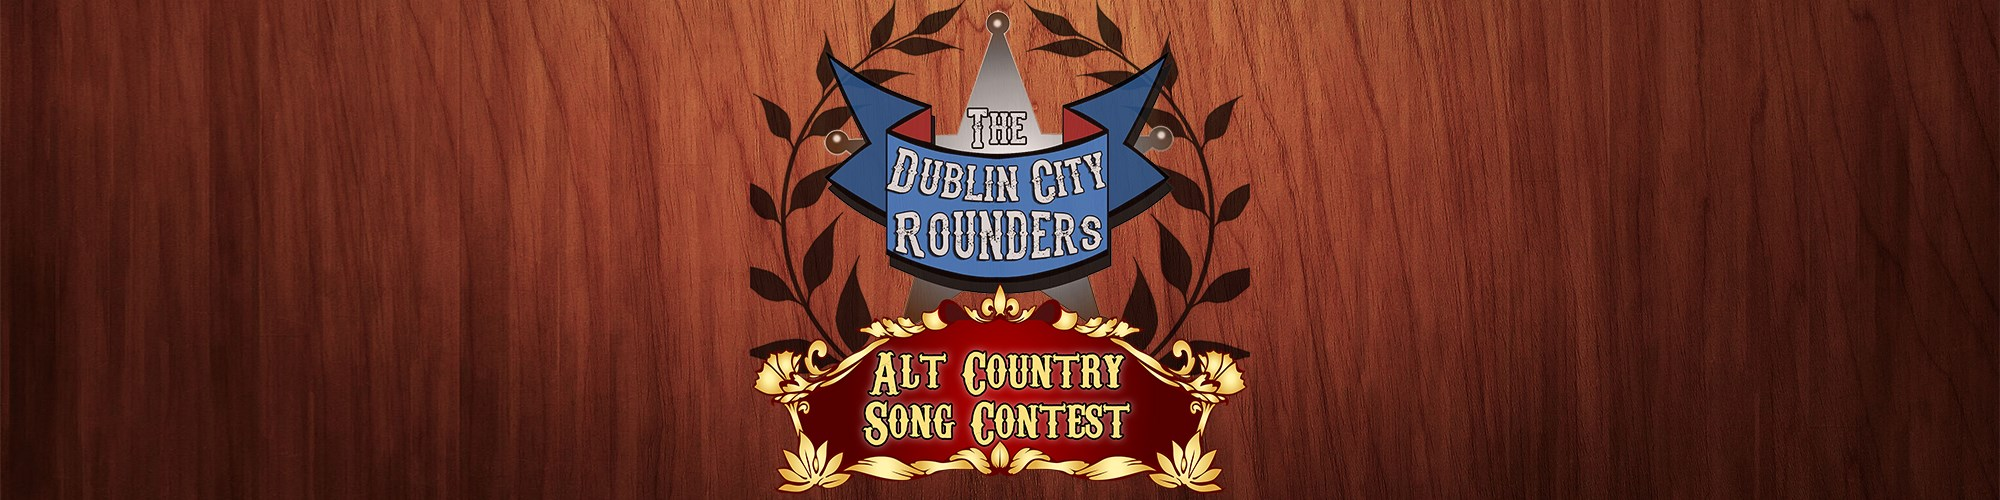 The Dublin City Rounders Alt-Country Song Contest Launched